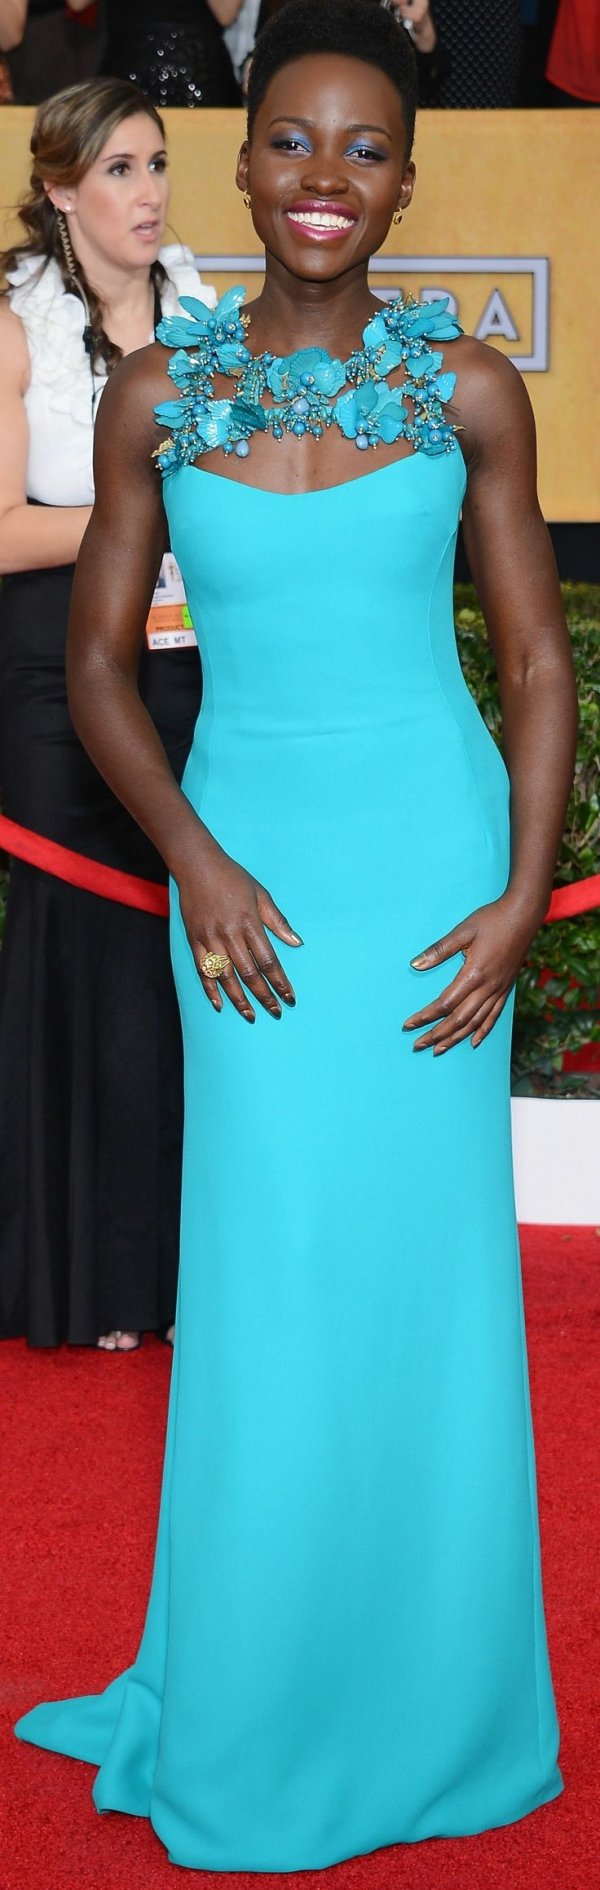 A Bright Teal Gucci Gown at the SAG Awards